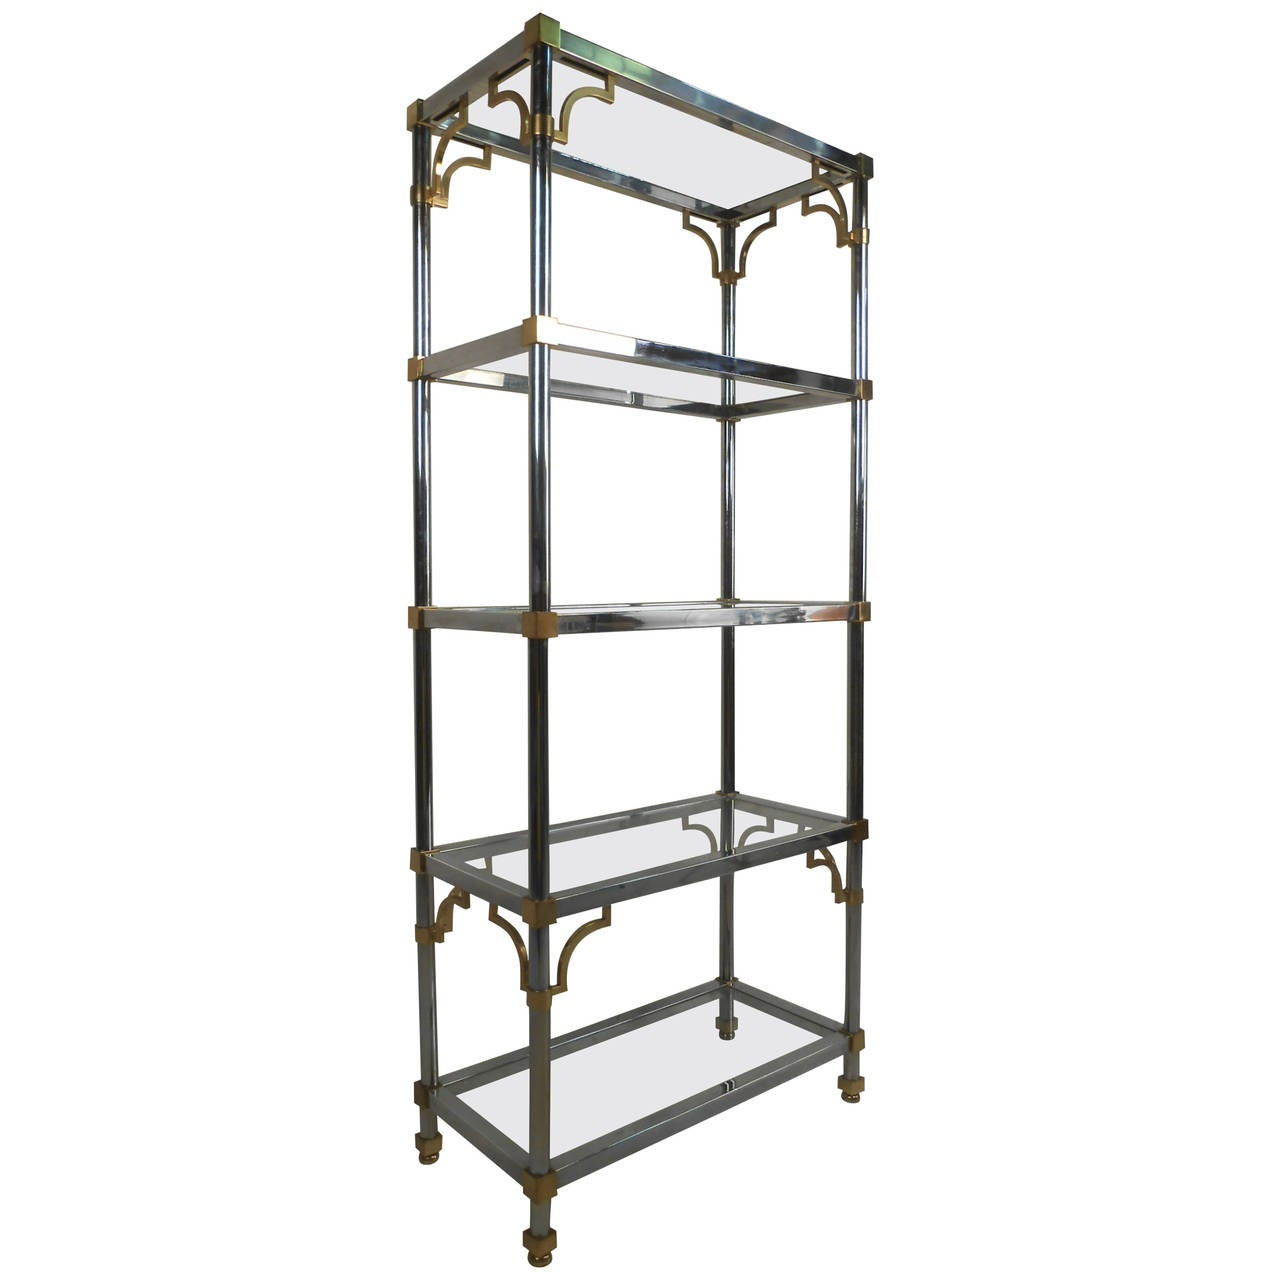 midcentury regency style chrome and brass etagere by maison jansen at 1stdibs. Black Bedroom Furniture Sets. Home Design Ideas